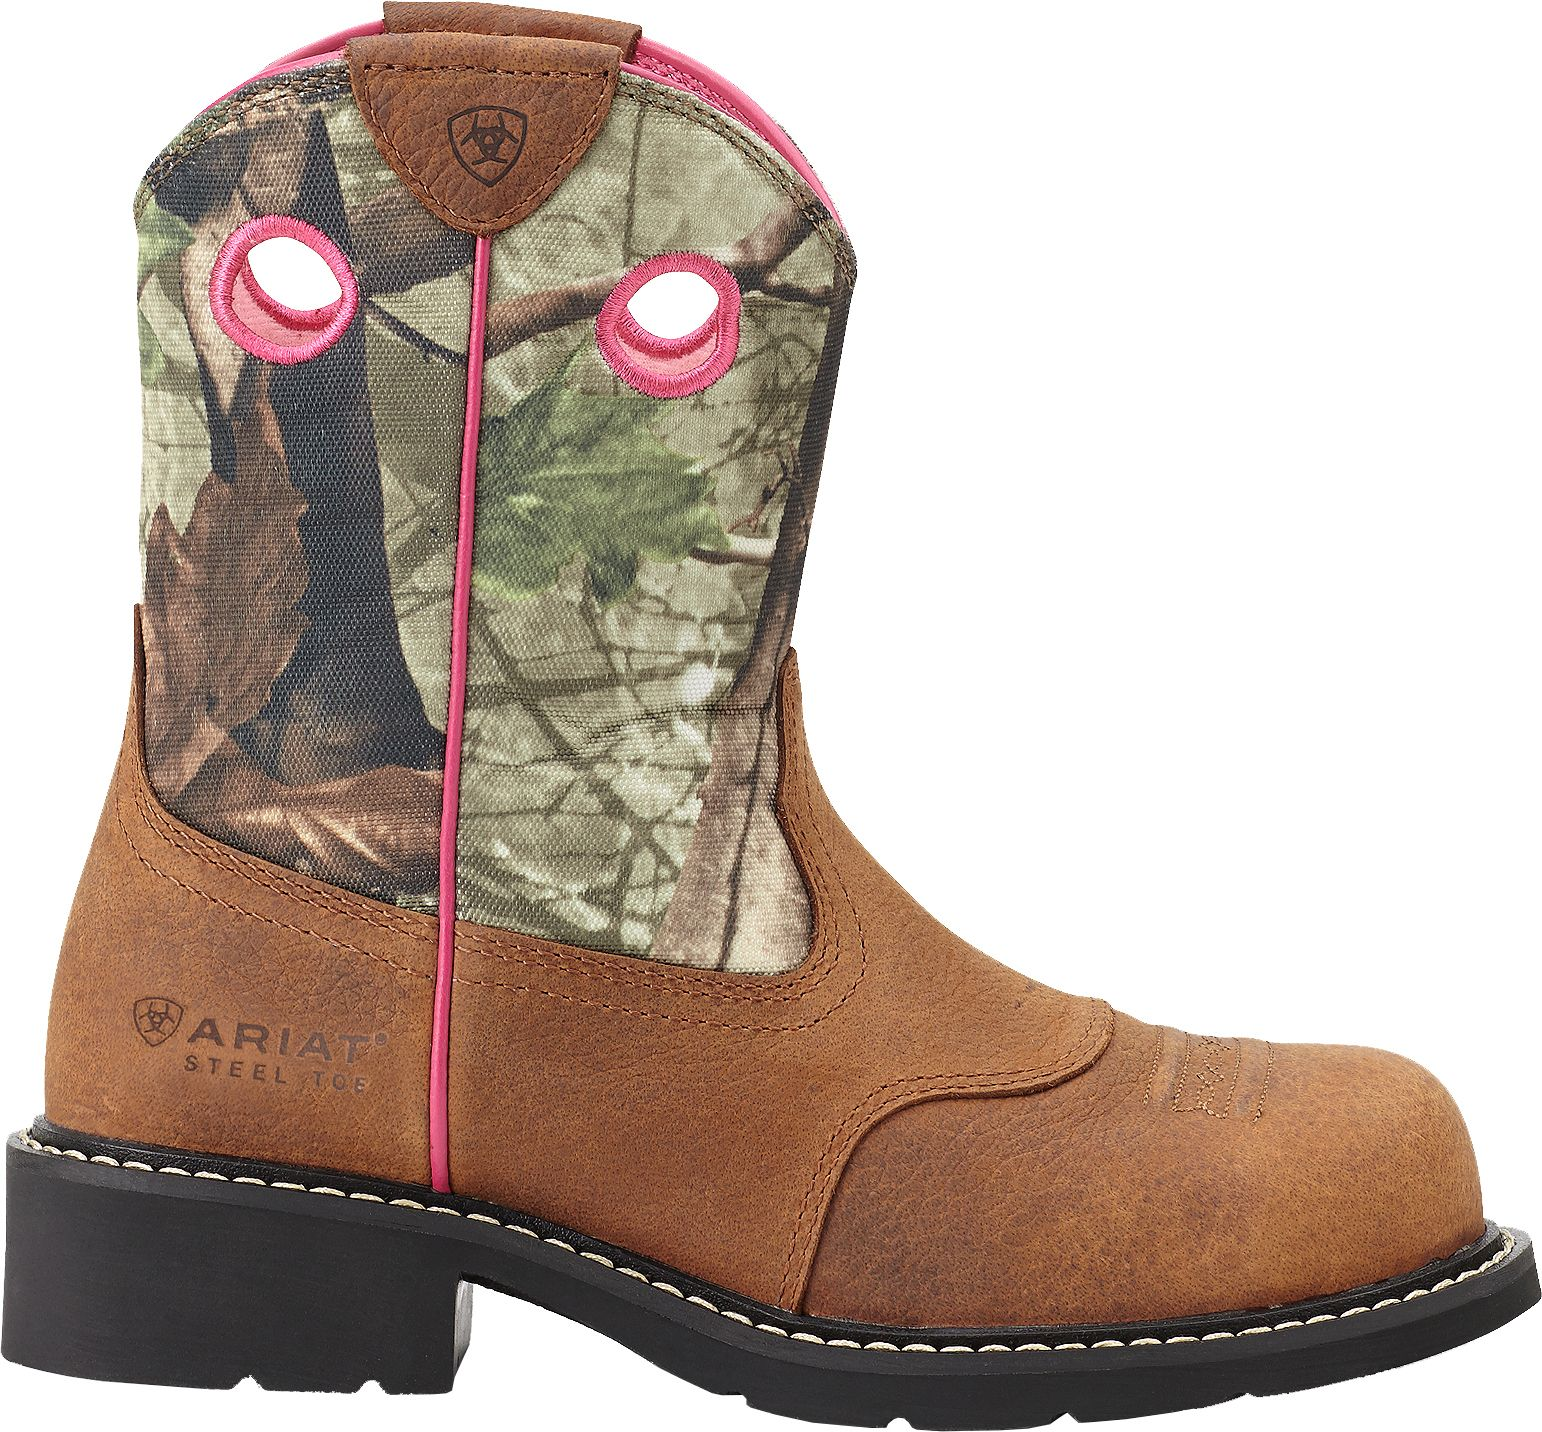 Womens Ariat steel toe boots exclusive photo